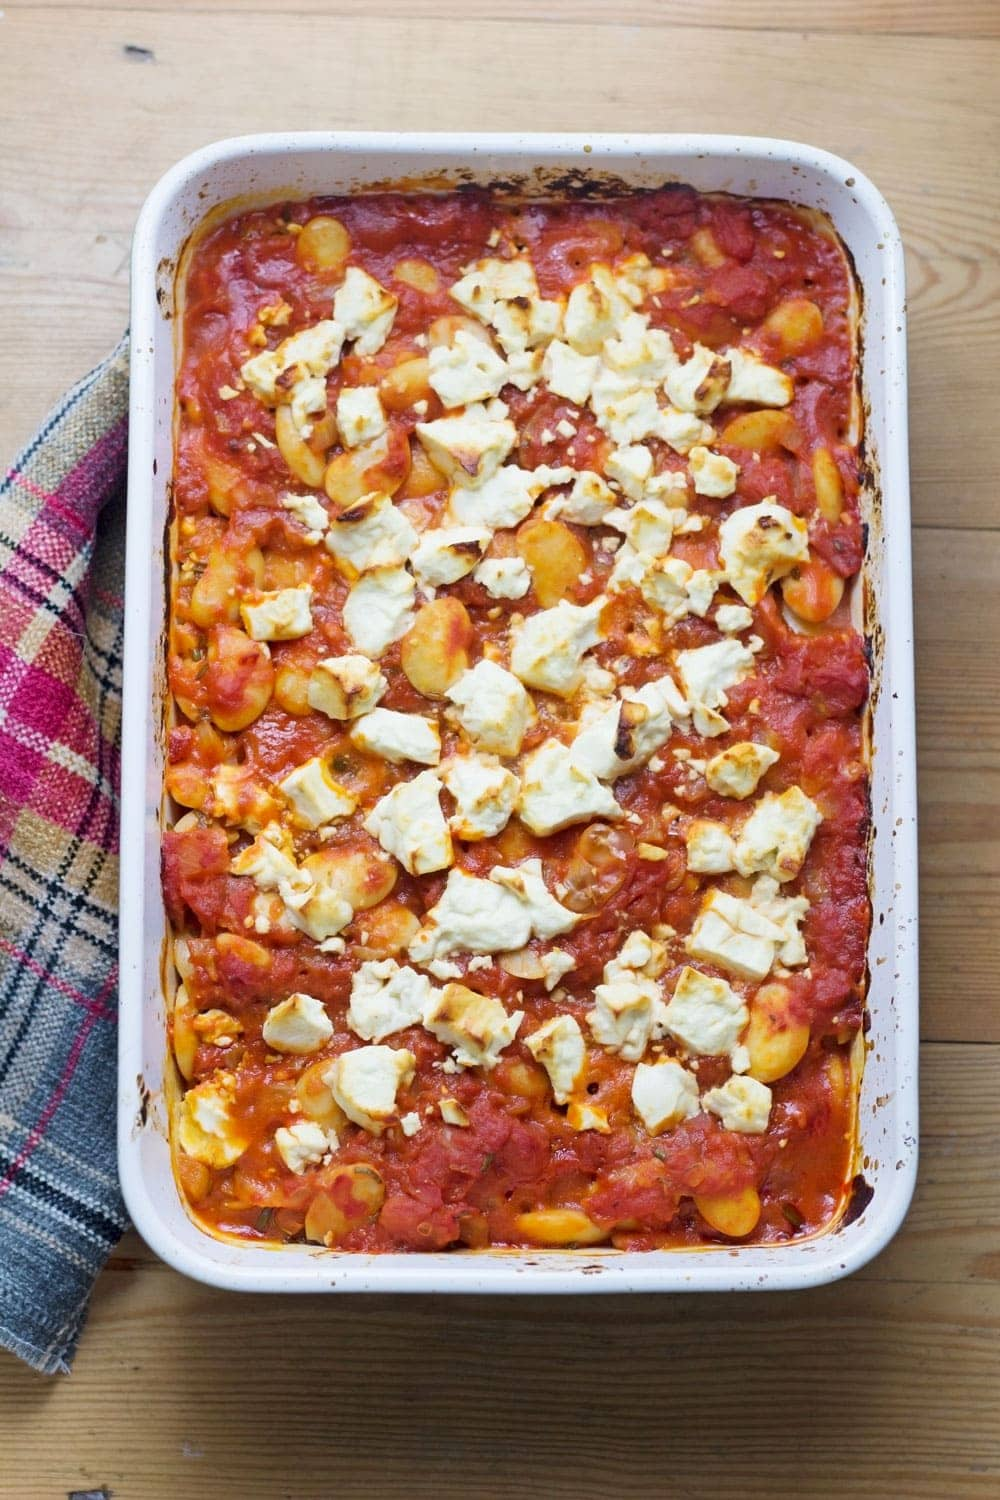 These baked white beans are cooked slowly with feta crumbled over the top then served with garlicky yoghurt and a drizzle of homemade chilli butter.